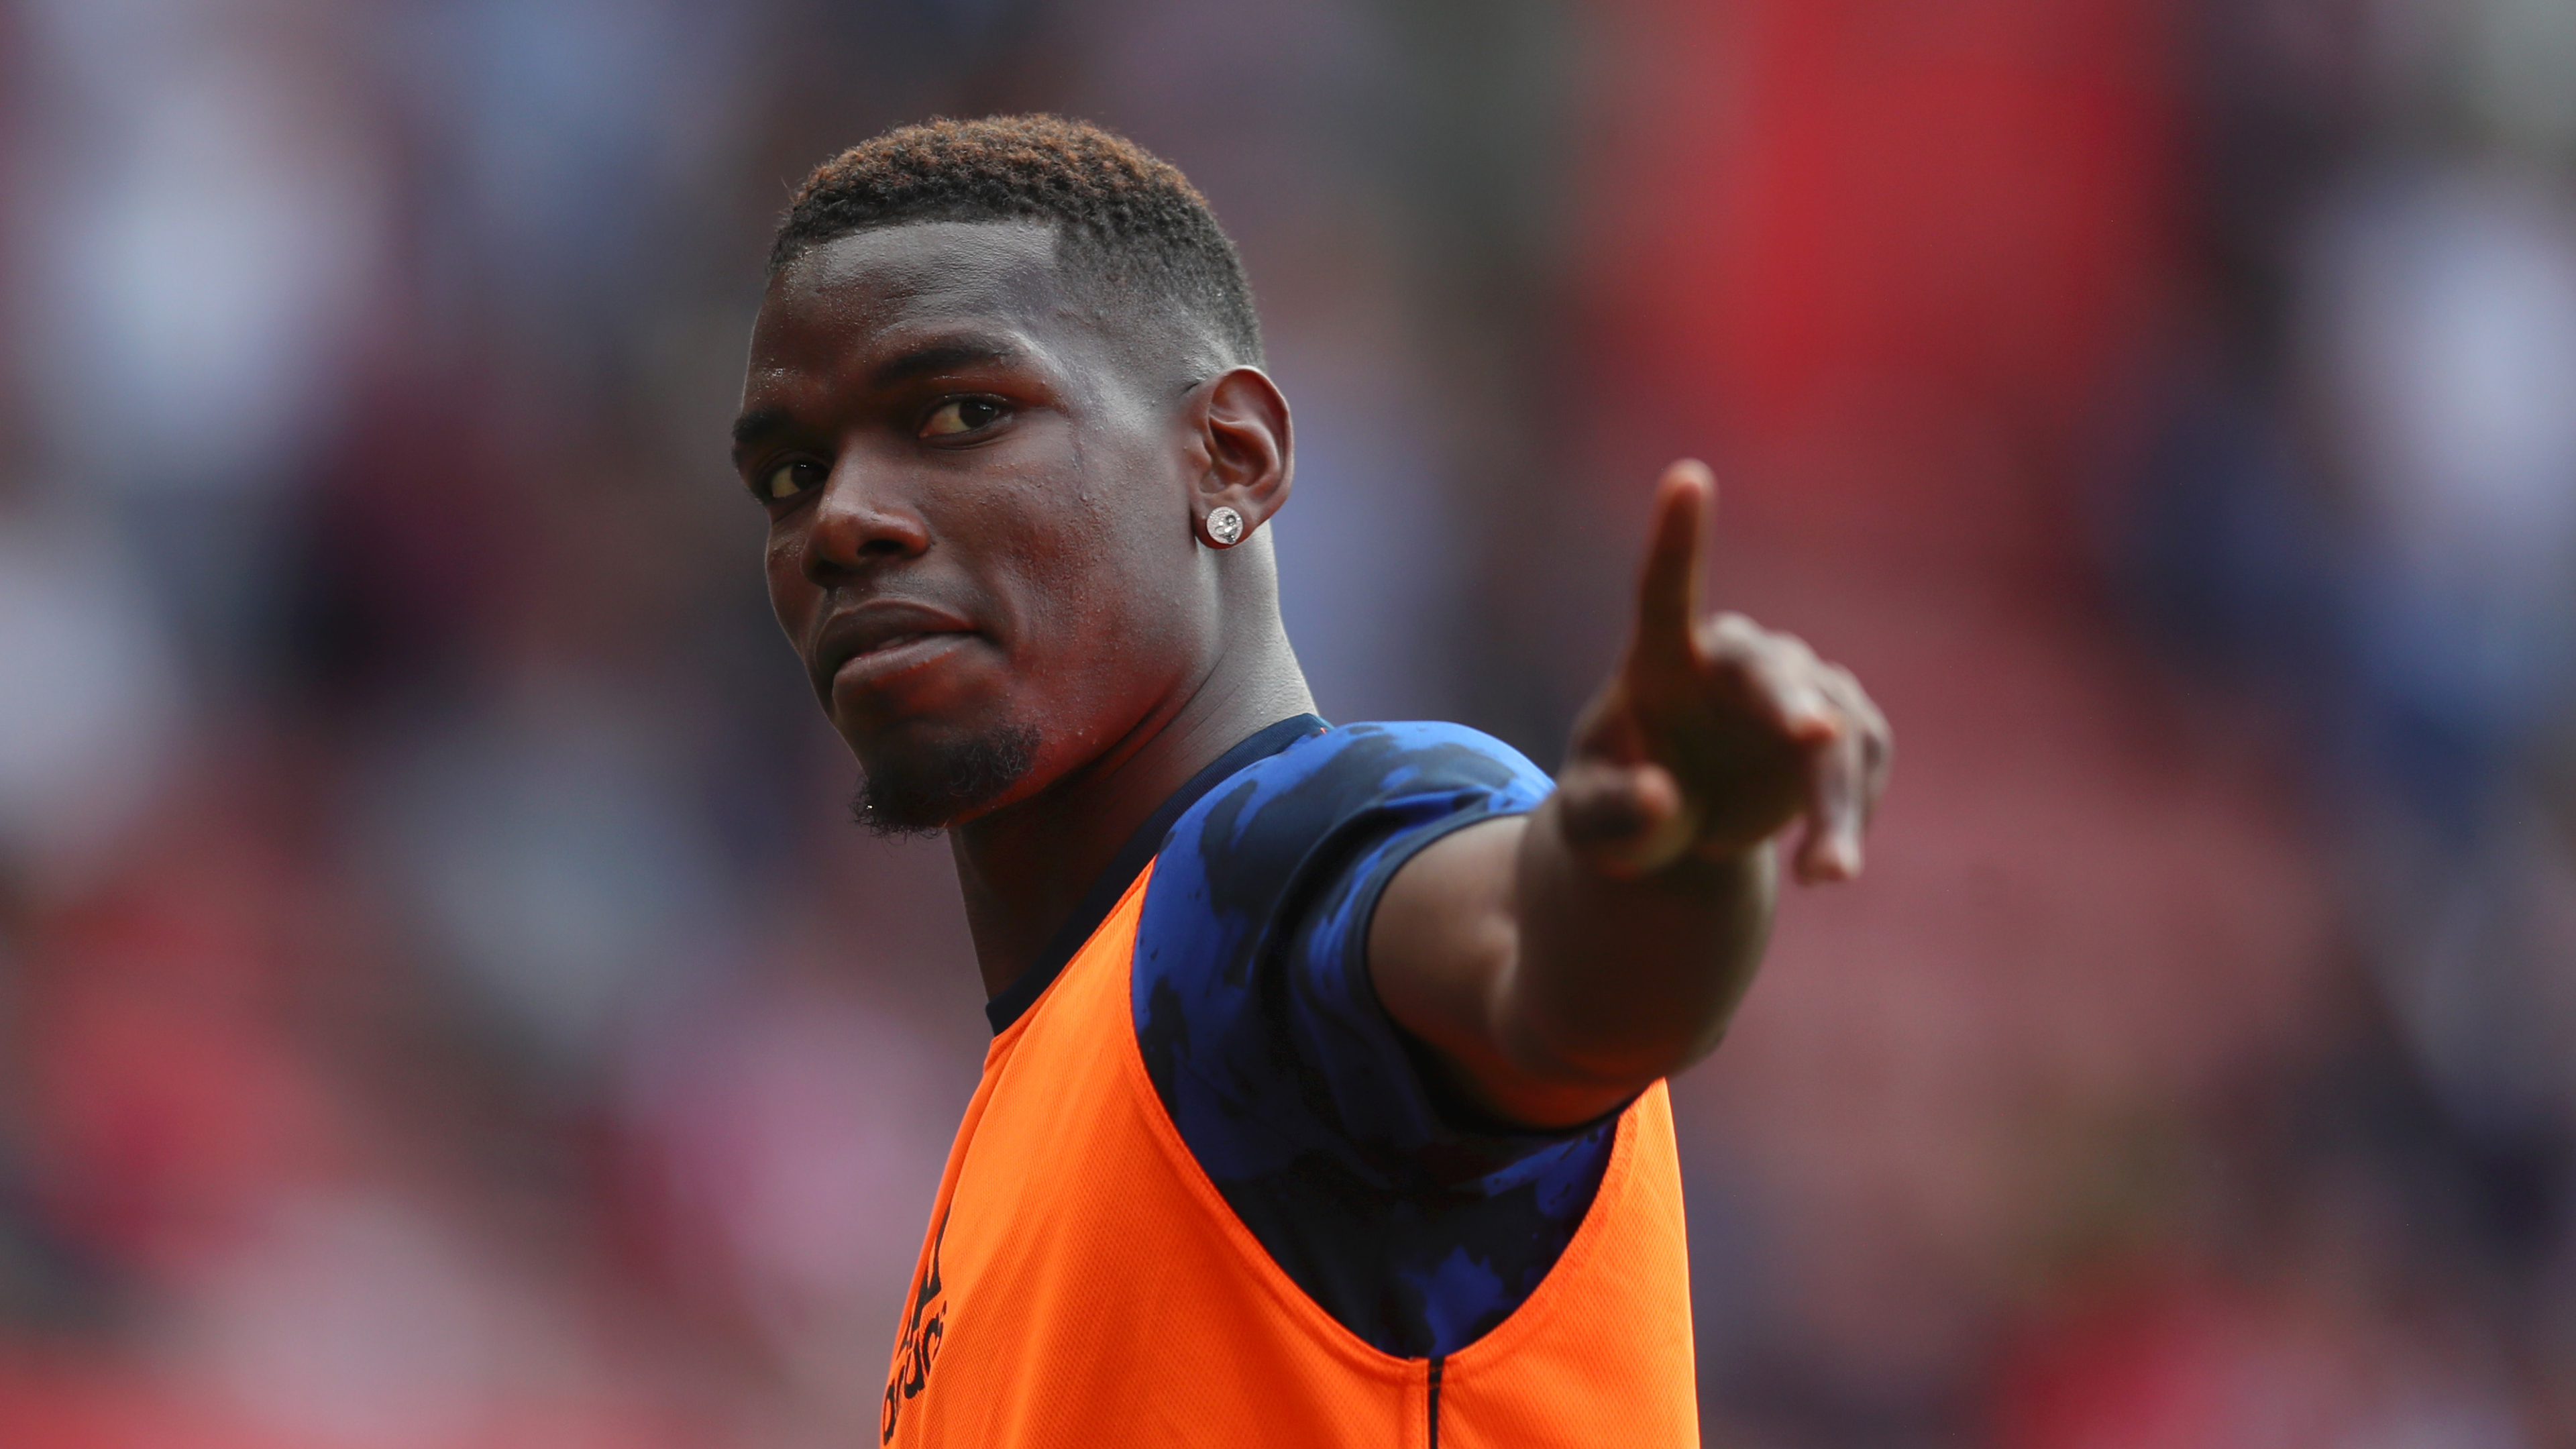 Paul Pogba: The incredible stats that show Man Utd star is Europe's best ball winner